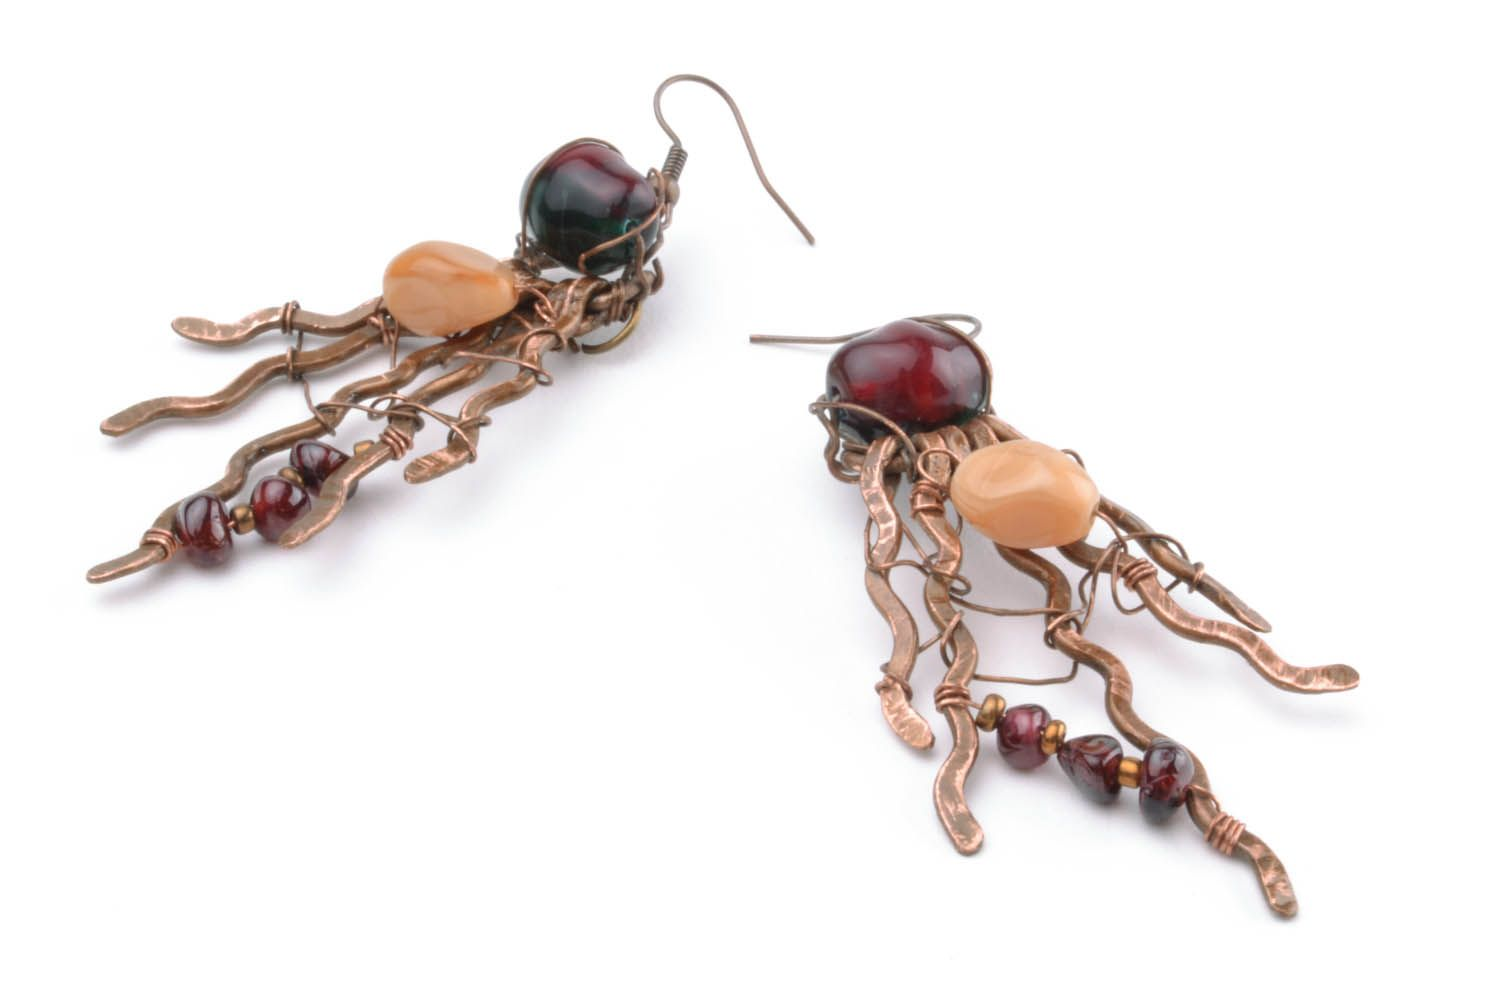 Copper earrings with natural stones photo 4